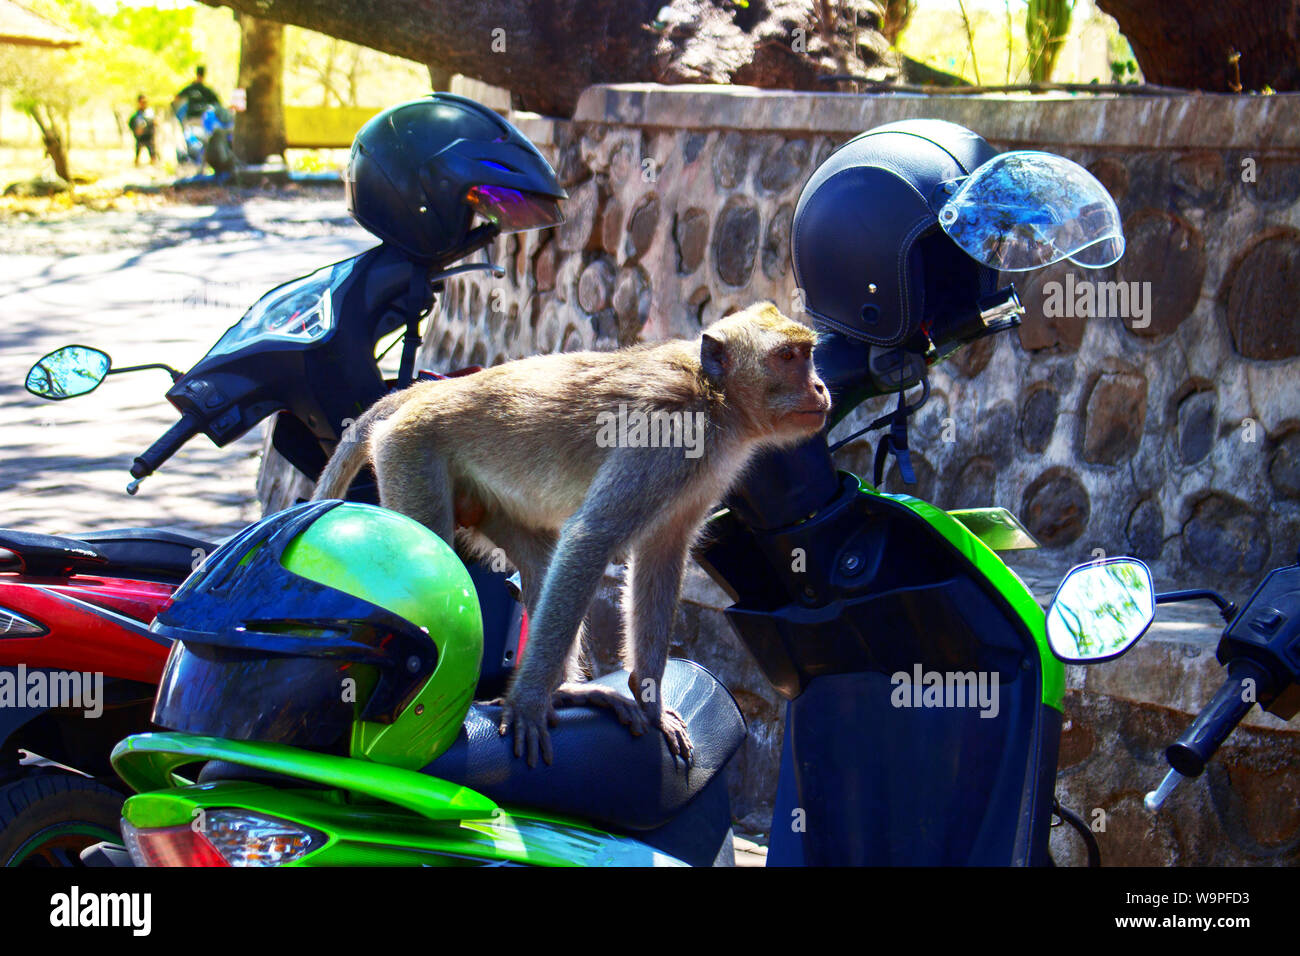 A Monkey Sit on Green Motorcircle With Helmet in Parking Lot Stock Photo